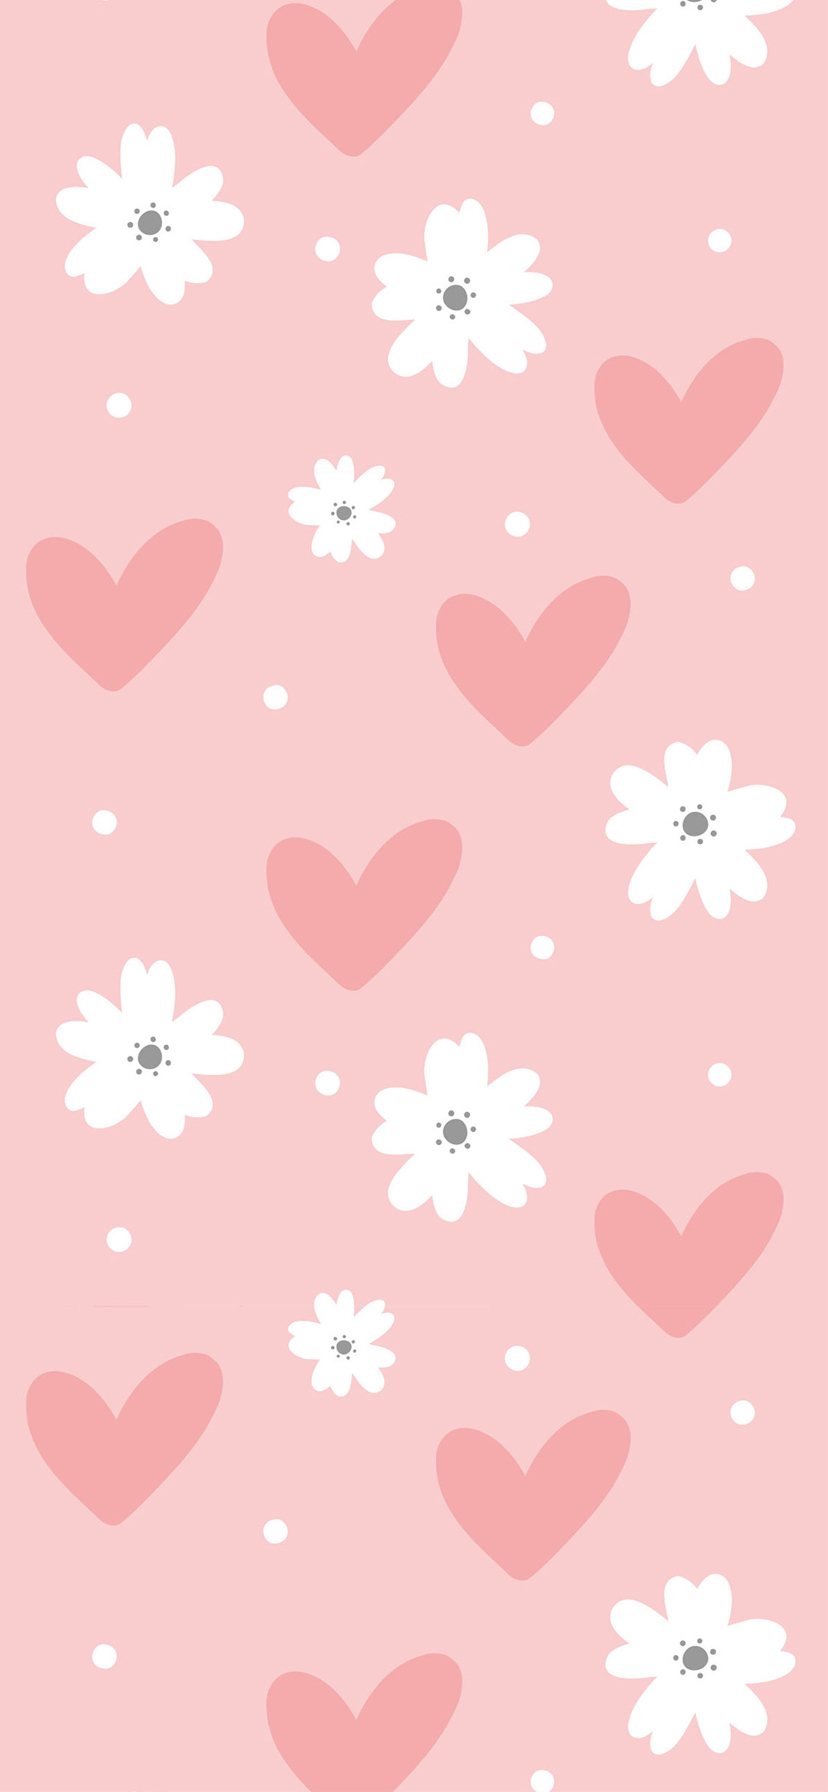 Free Iphone 11 Wallpaper Download 14 Of 20 Simple Girly Pattern Hd Wallpapers Wallpapers Download High Resolution Wallpapers